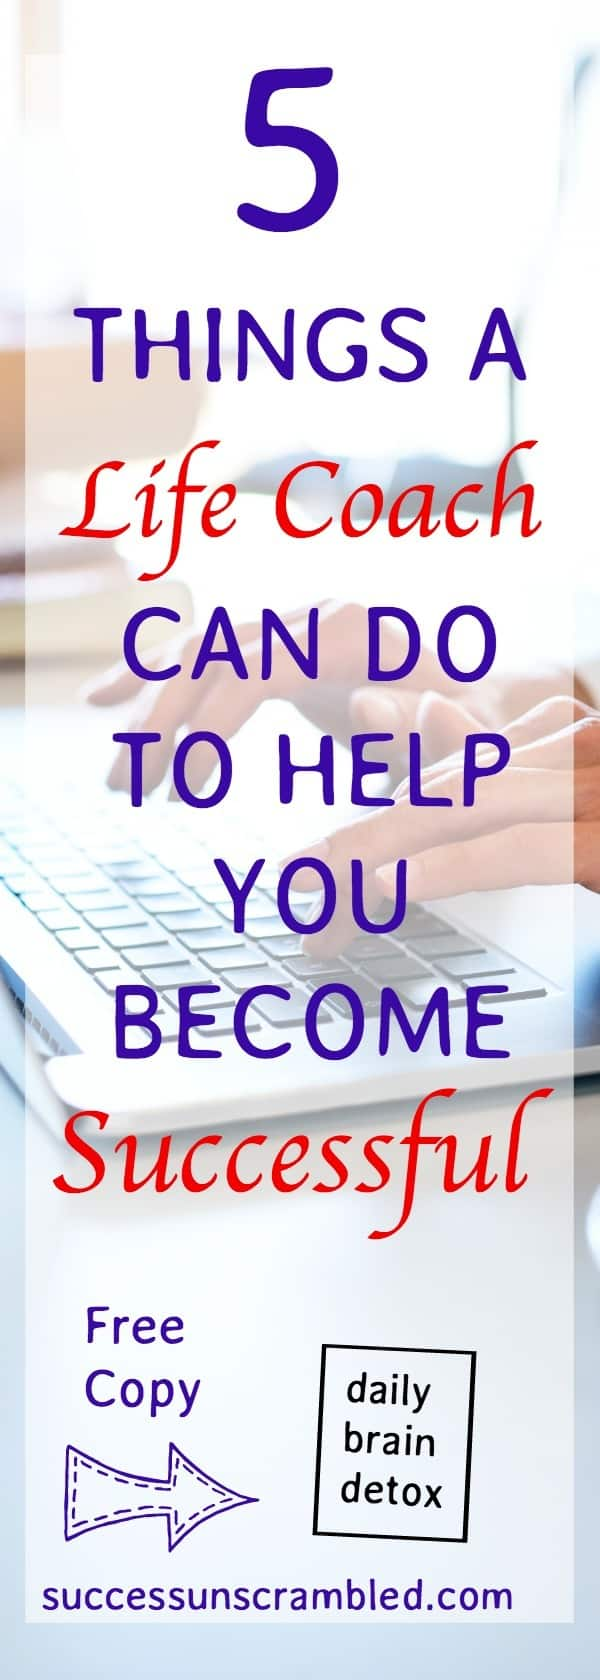 5 things a life coach can do